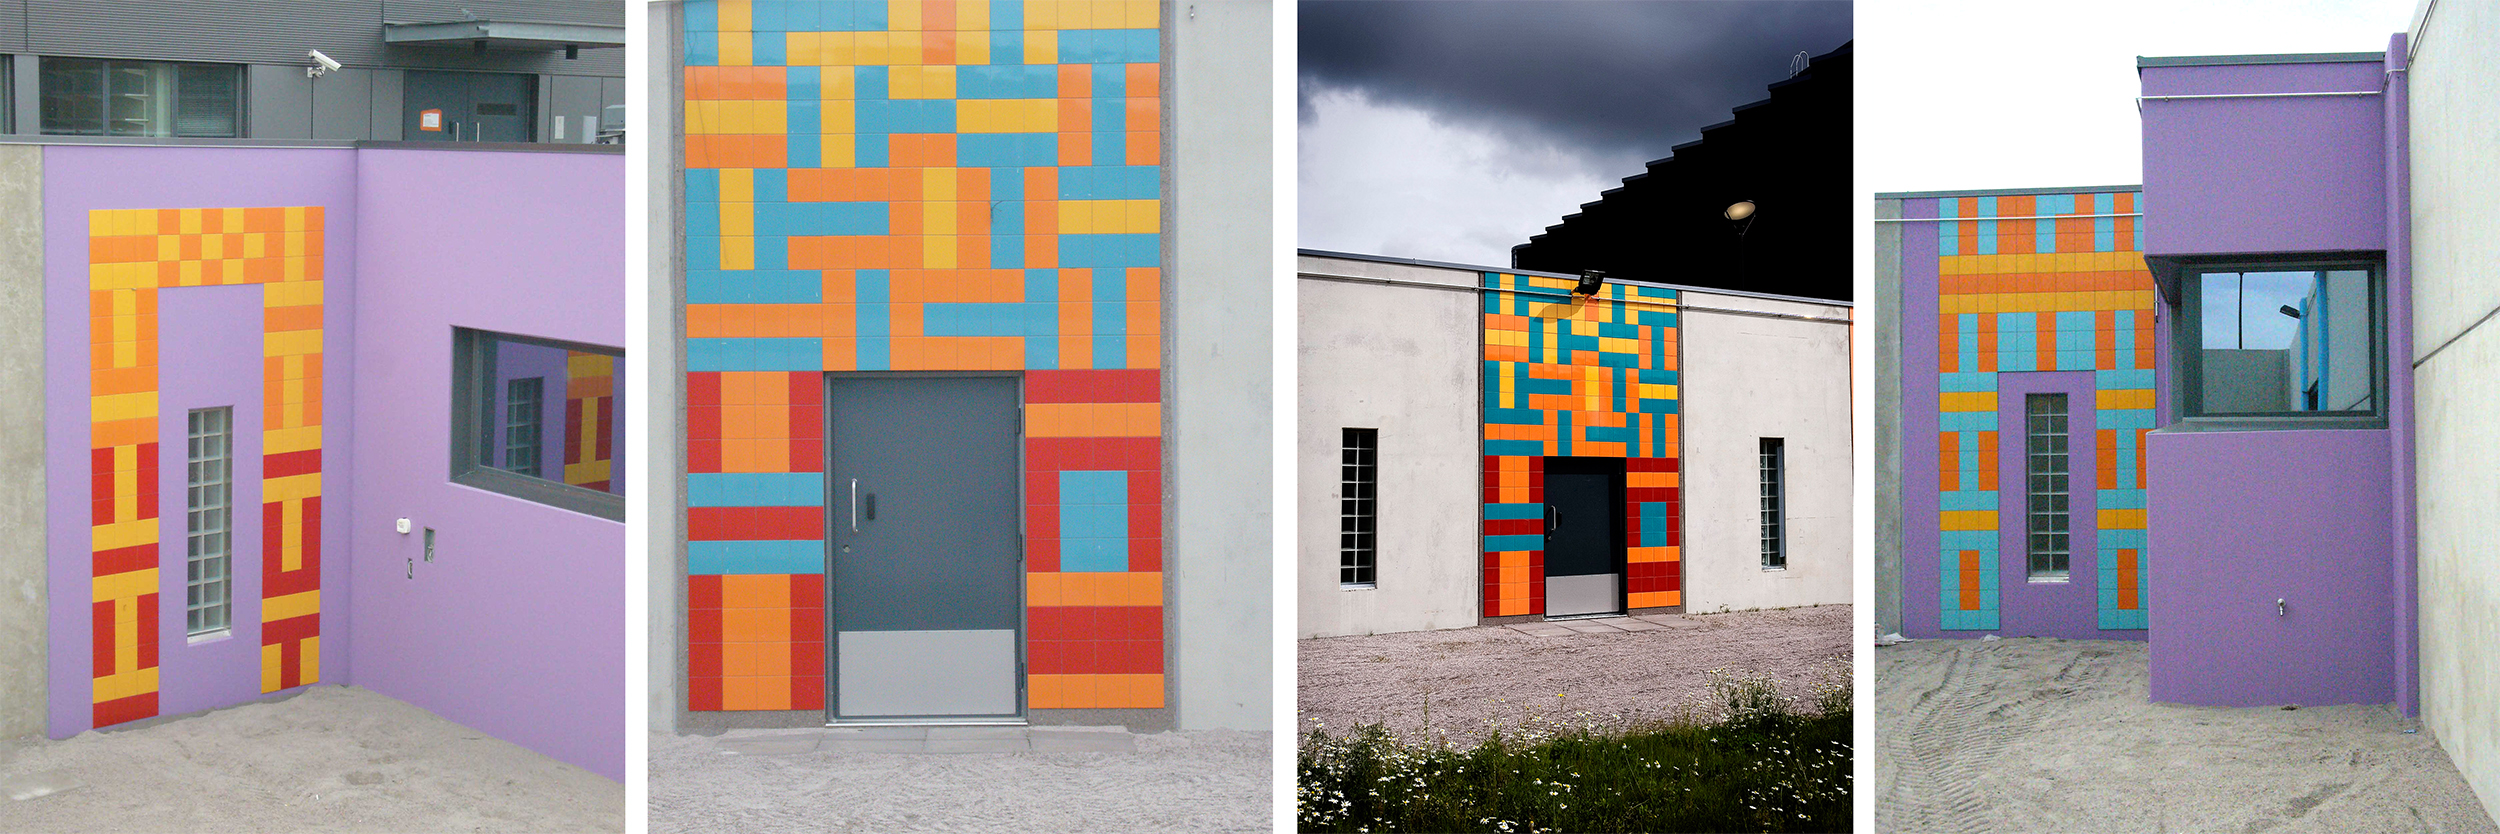 Material: Tile mosaics and painted concrete in 9 different courtyards.